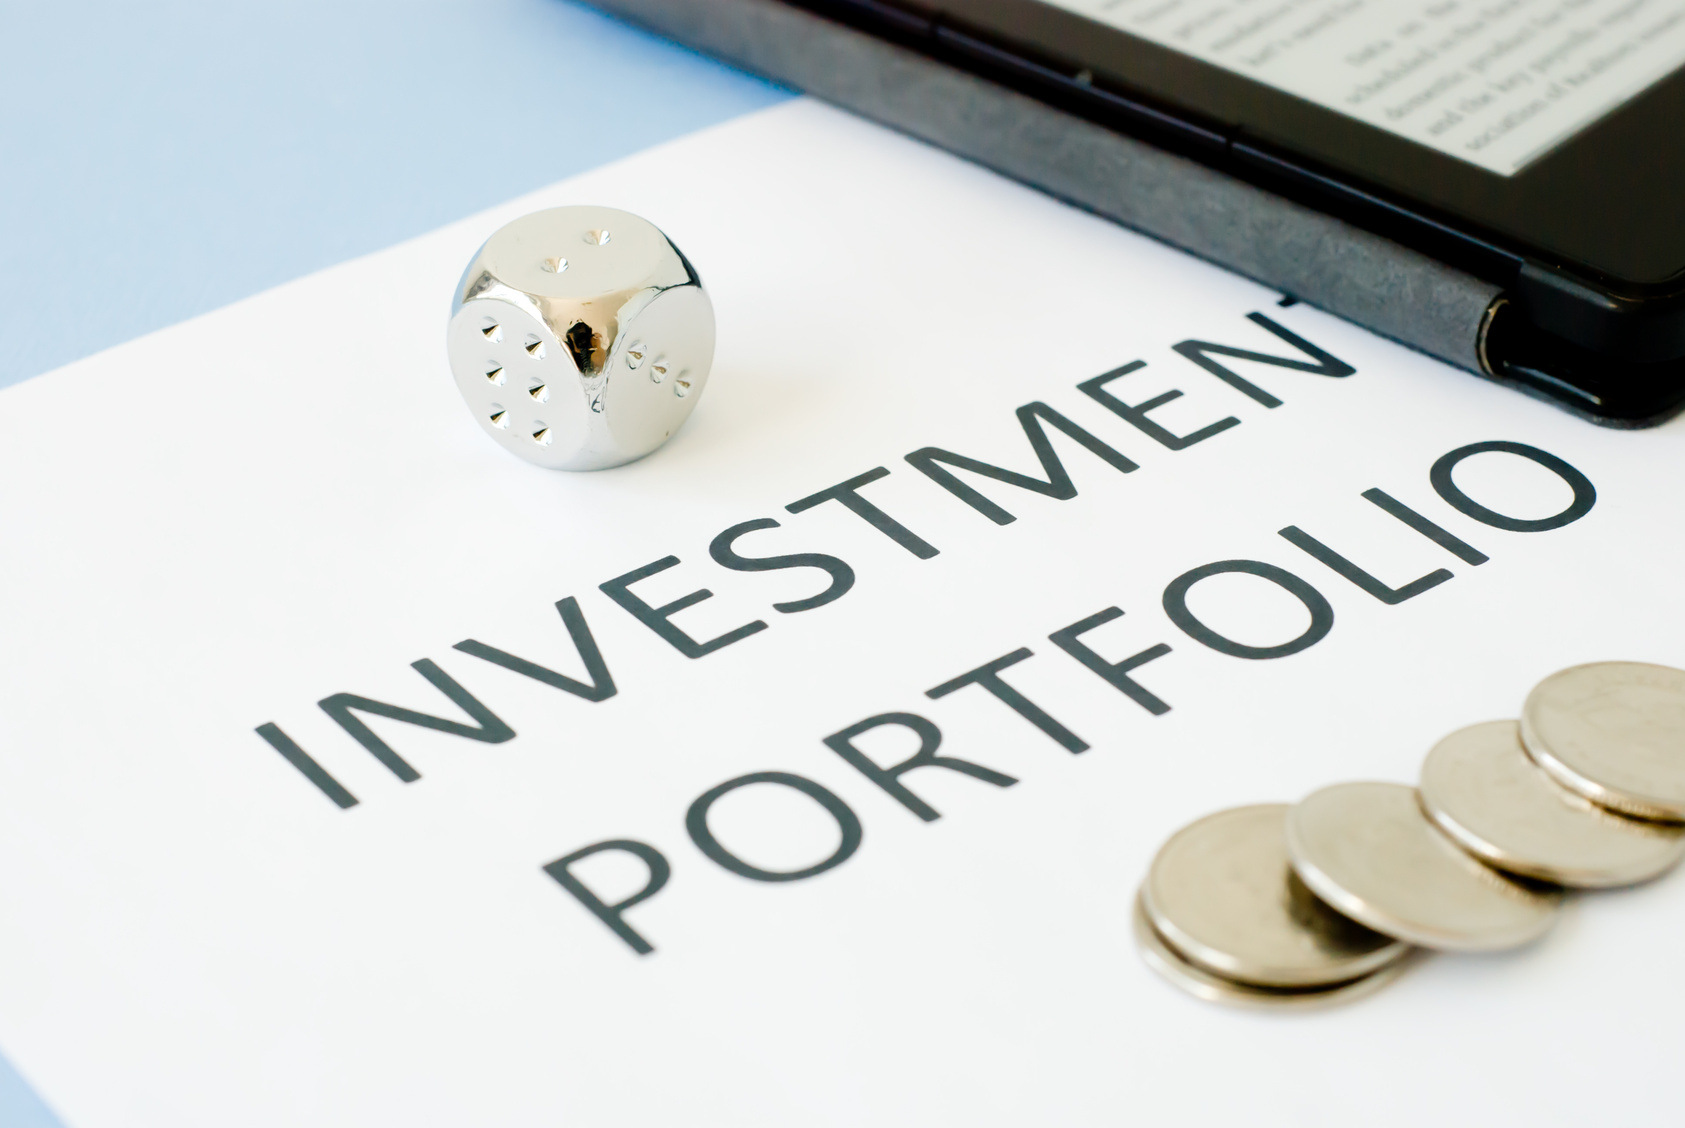 Investing in Foreign Stocks at Home